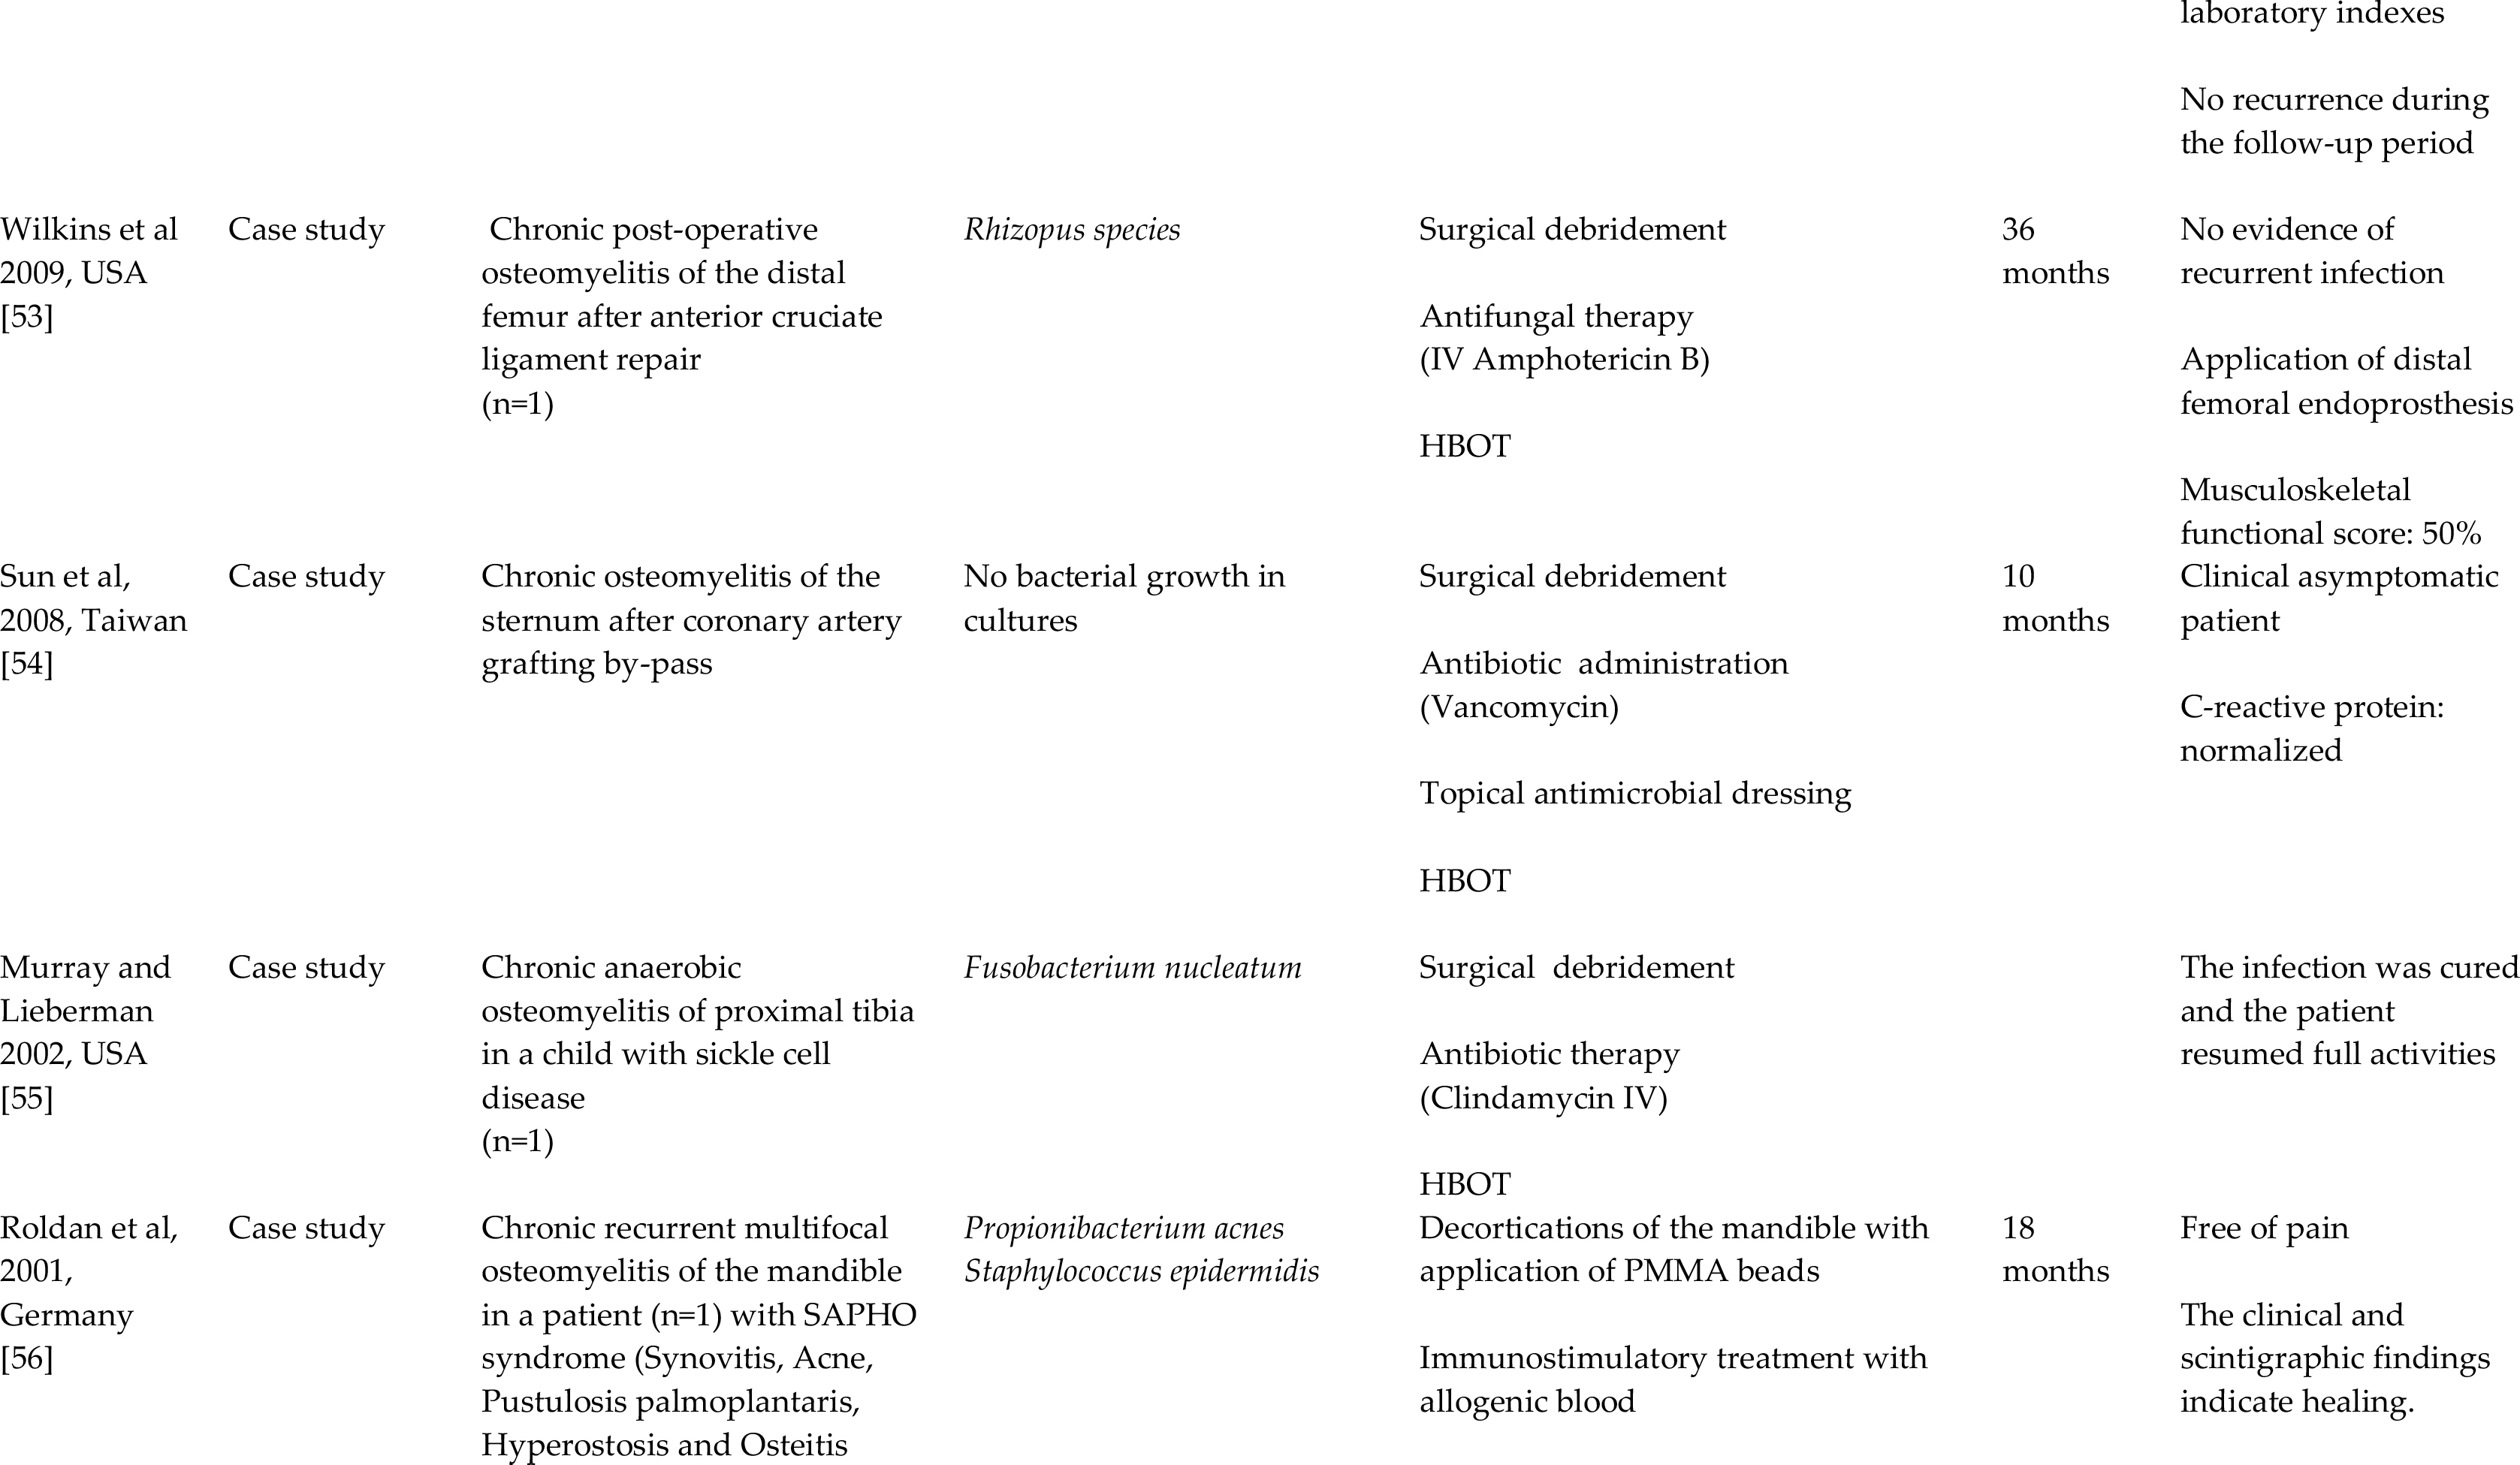 Overview of the causative agents, classification, interventions, follow-up and outcome of the included case studies.